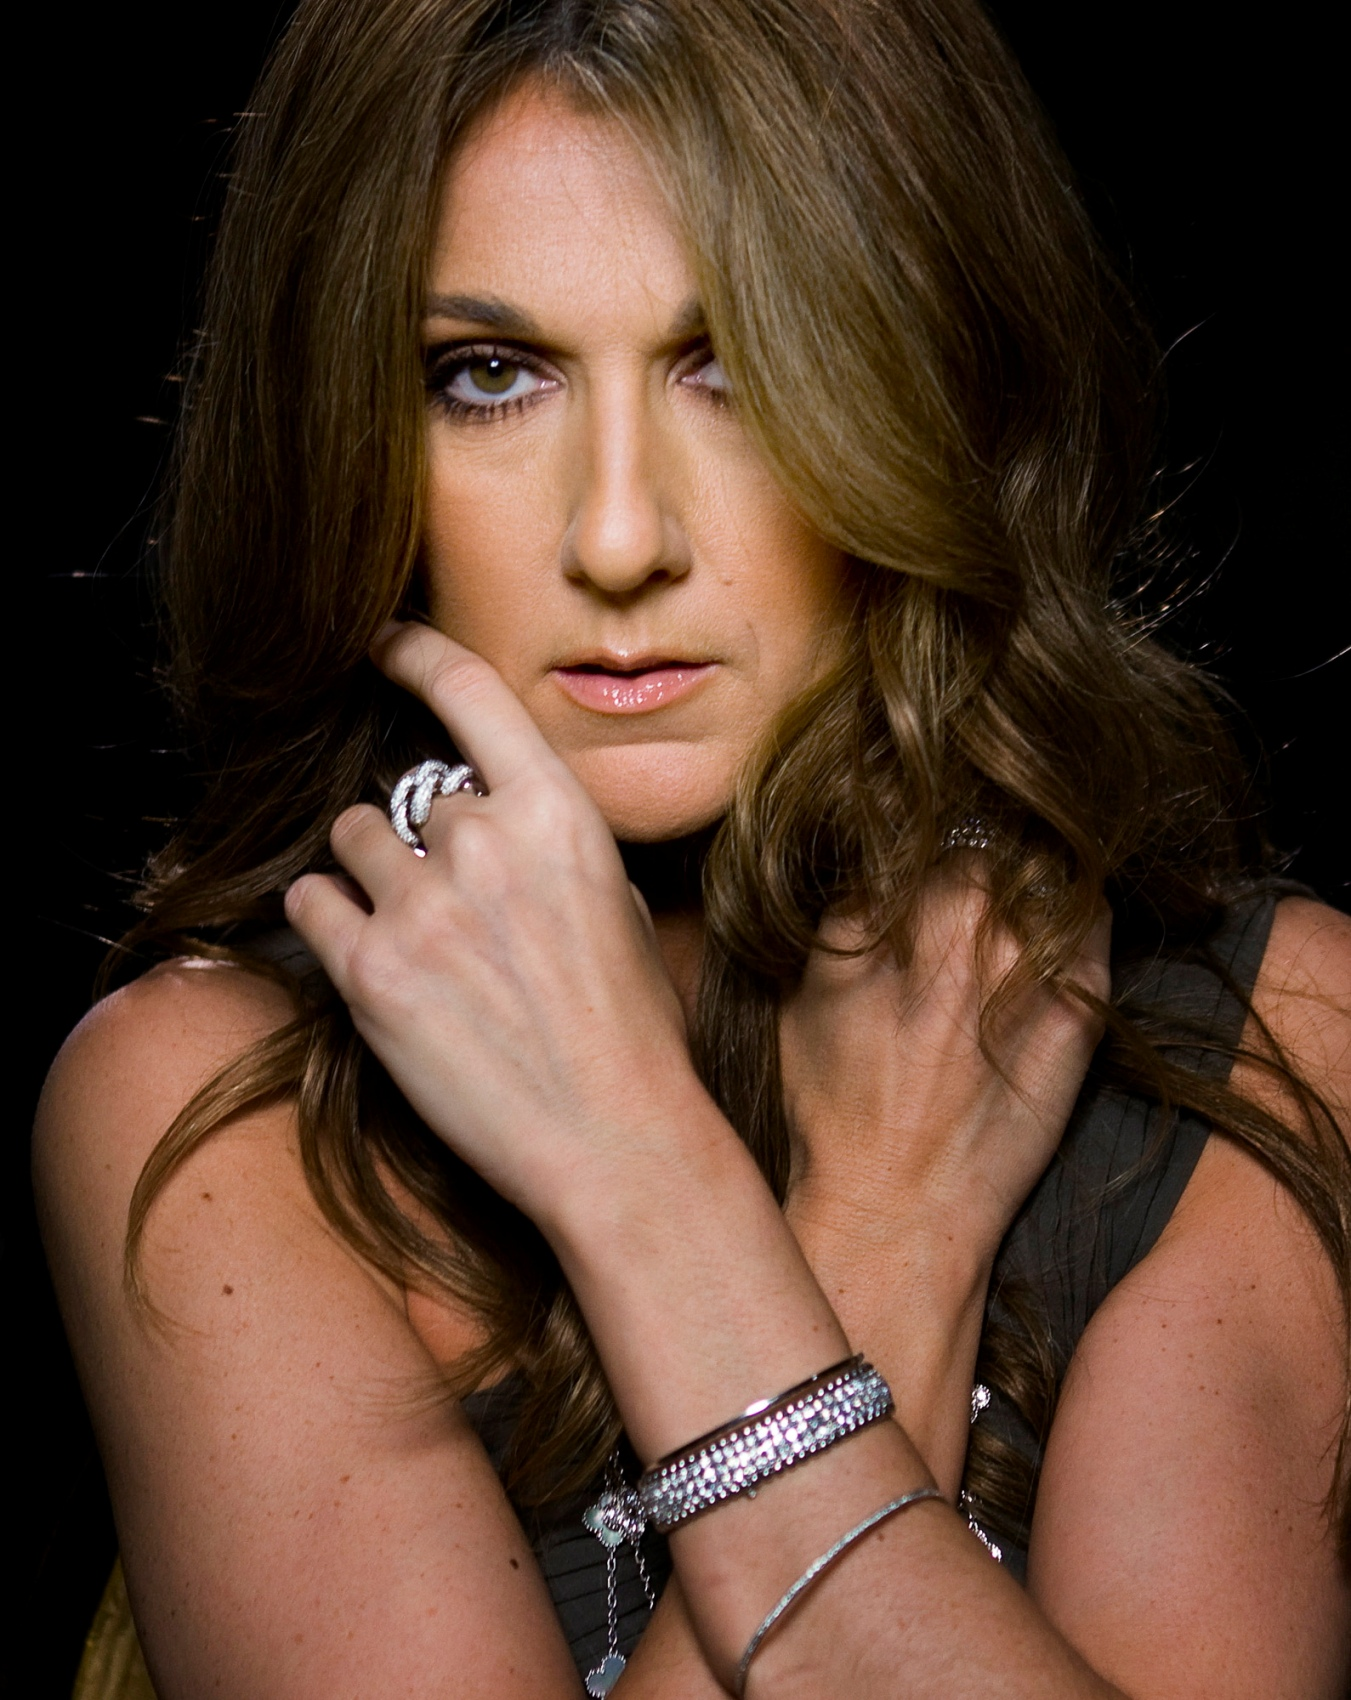 Celine Dion - Wikipedia Celine dion new photos